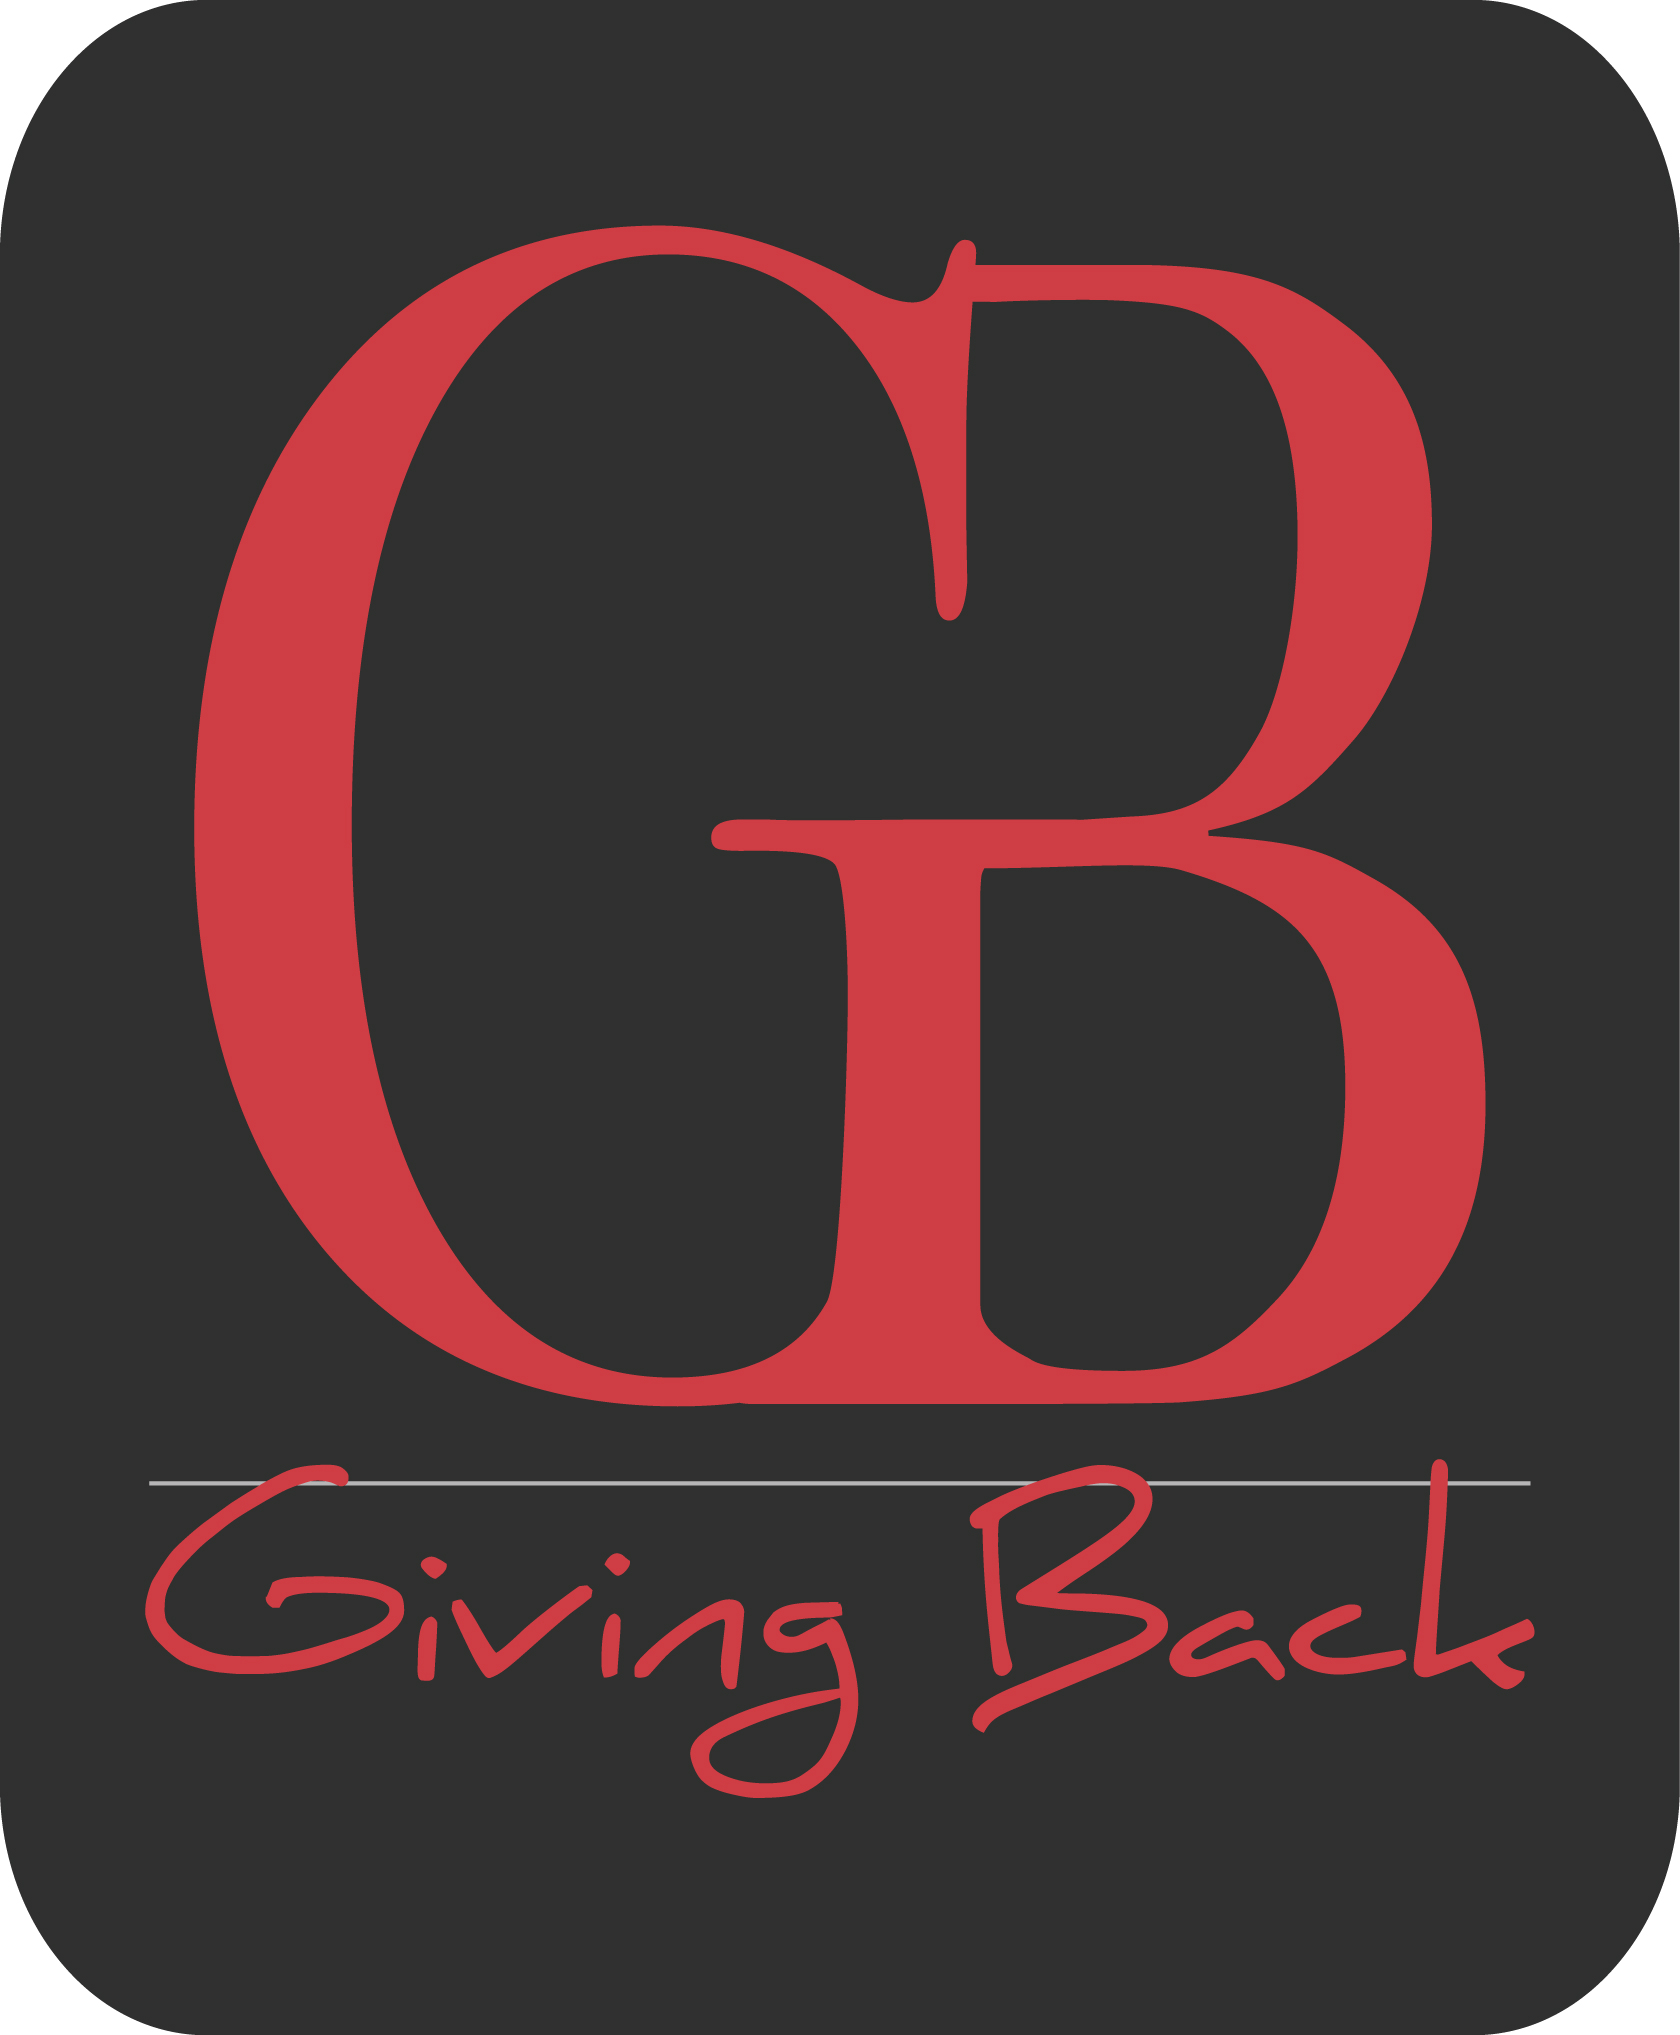 GivingBackLogo